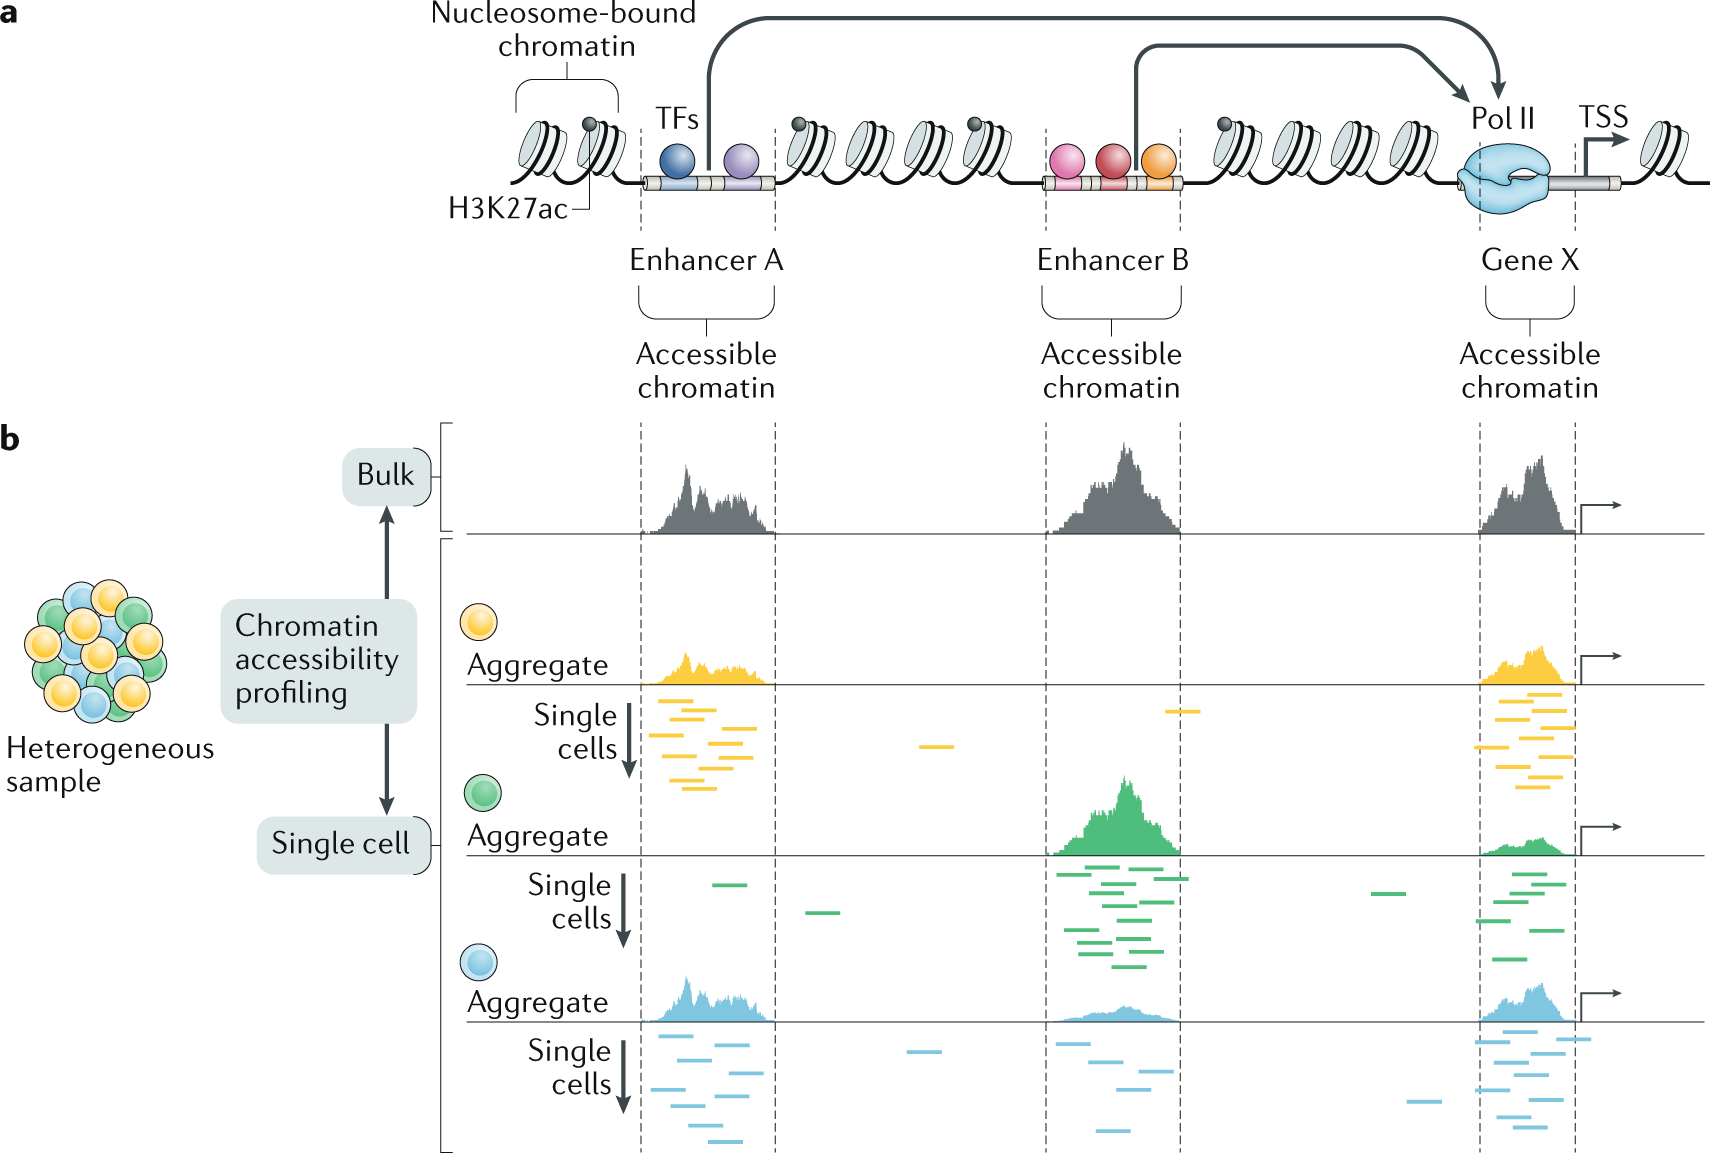 Chromatin accessibility profiling in bulk and at single-cell level reveals putative regulatory regions.